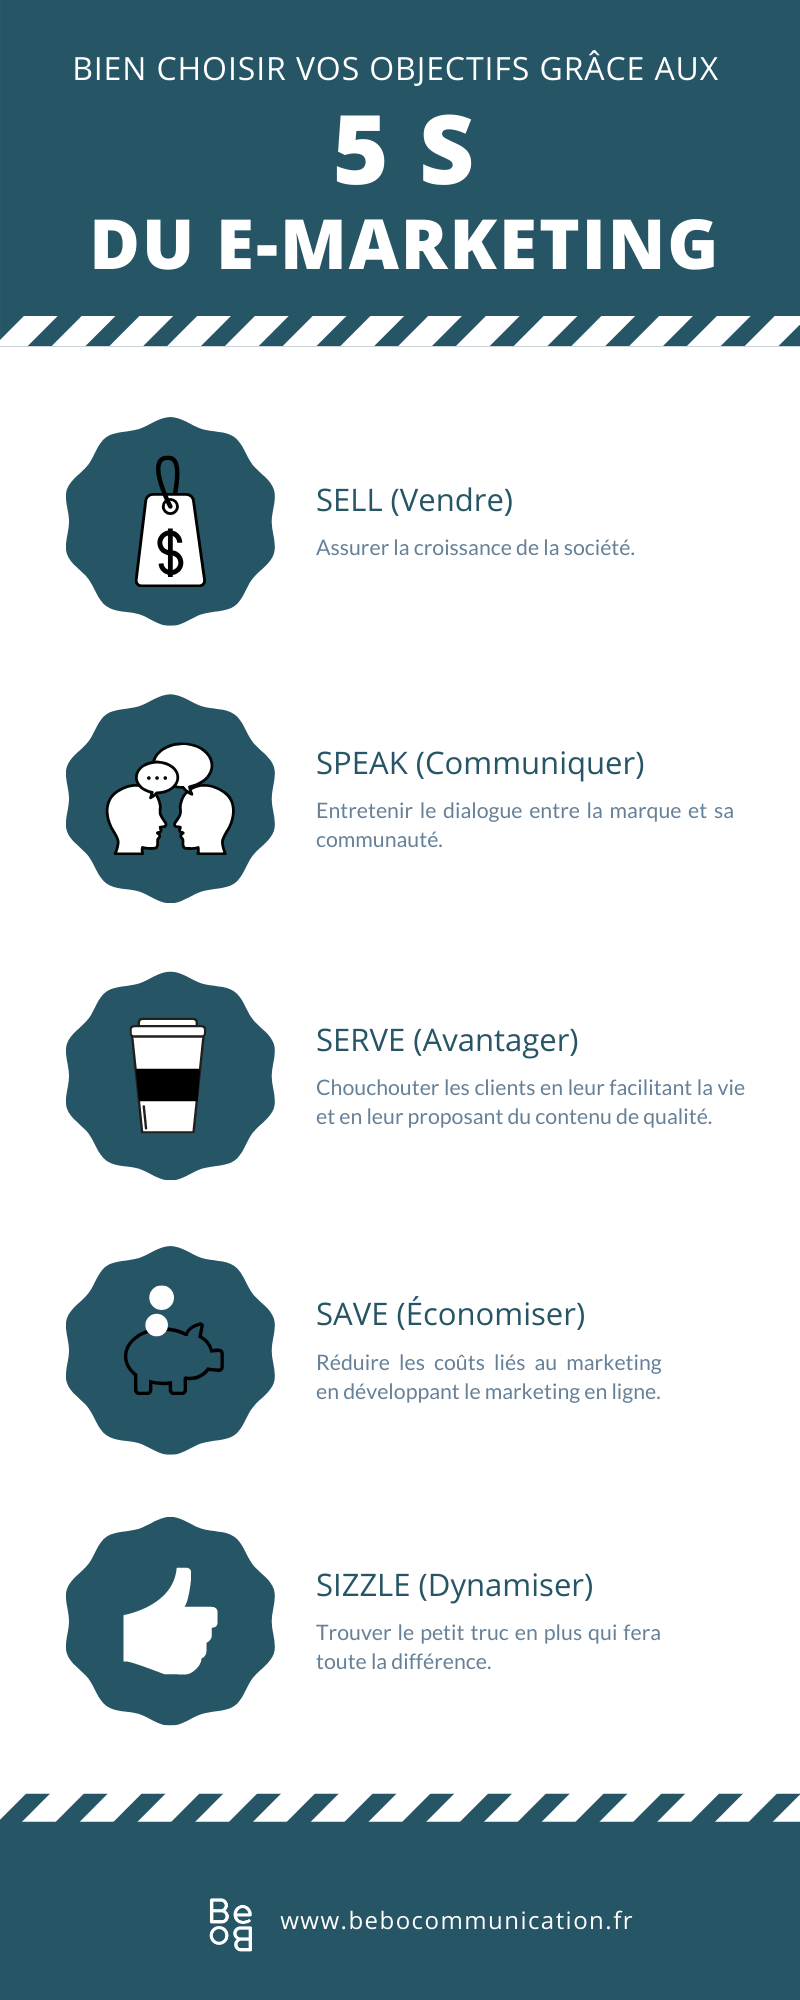 Les 5 S du e-marketing